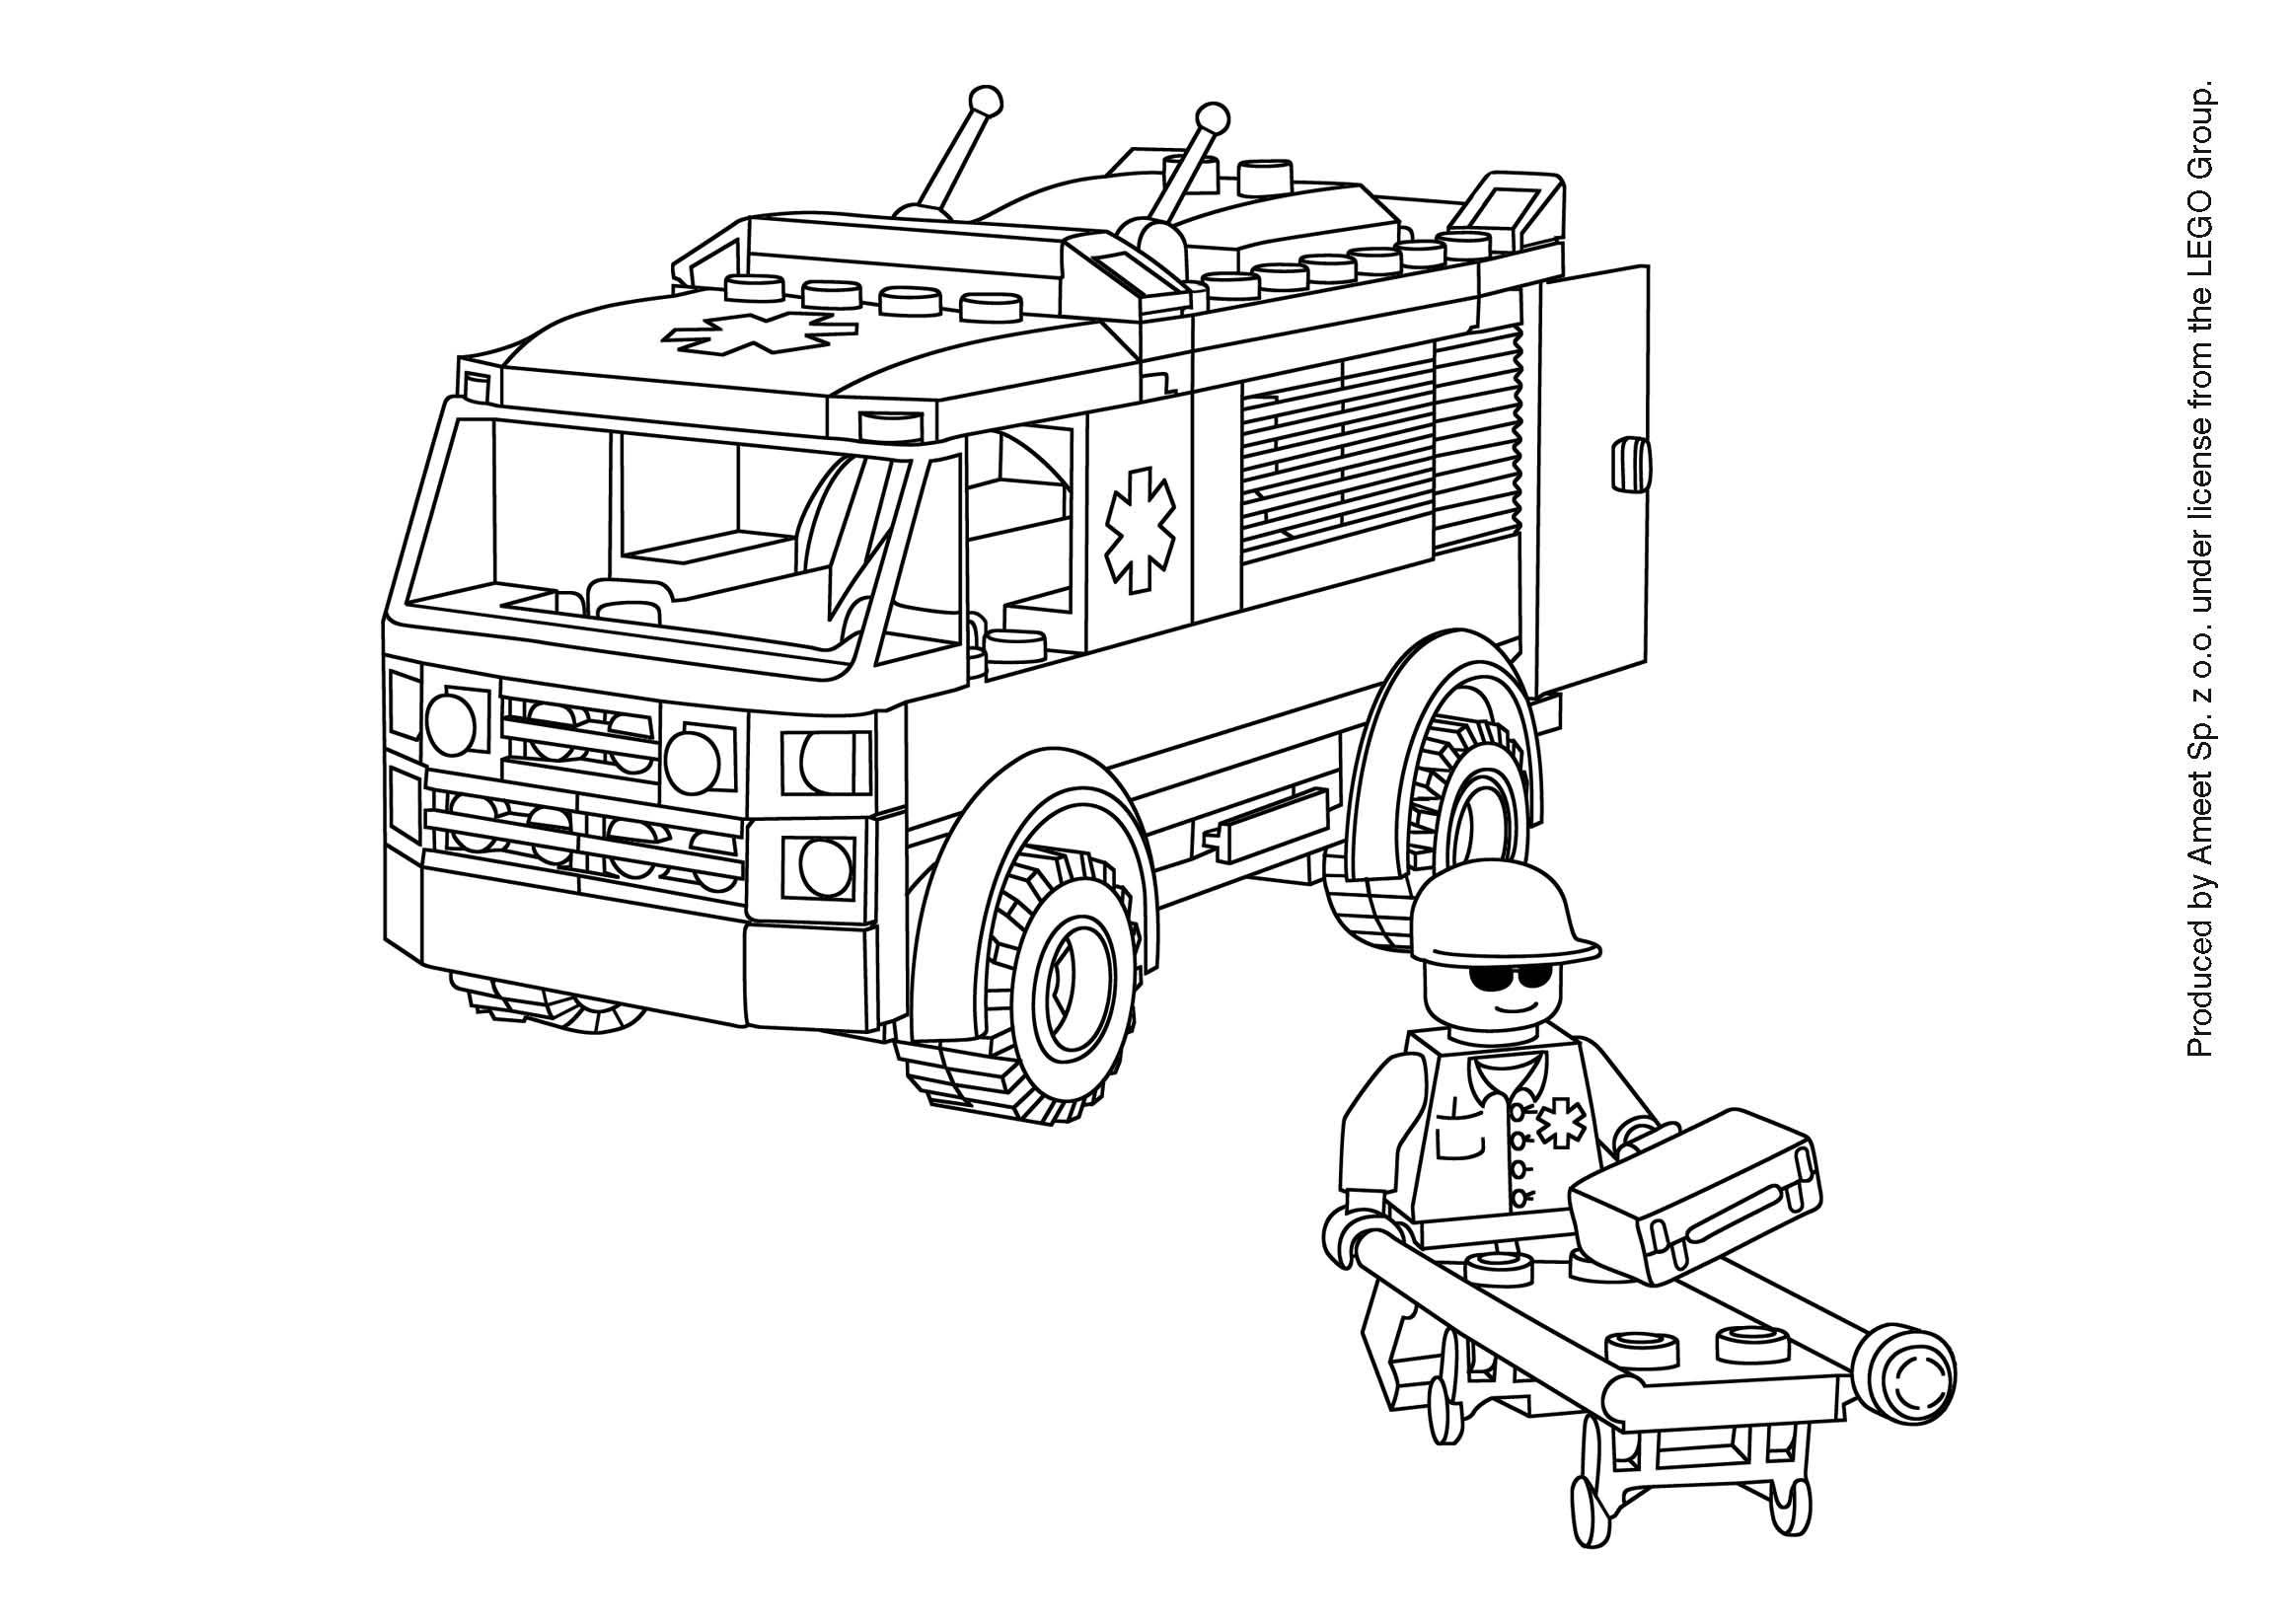 87 dessins de coloriage playmobil ambulance imprimer - Dessin a colorier playmobil moto ...